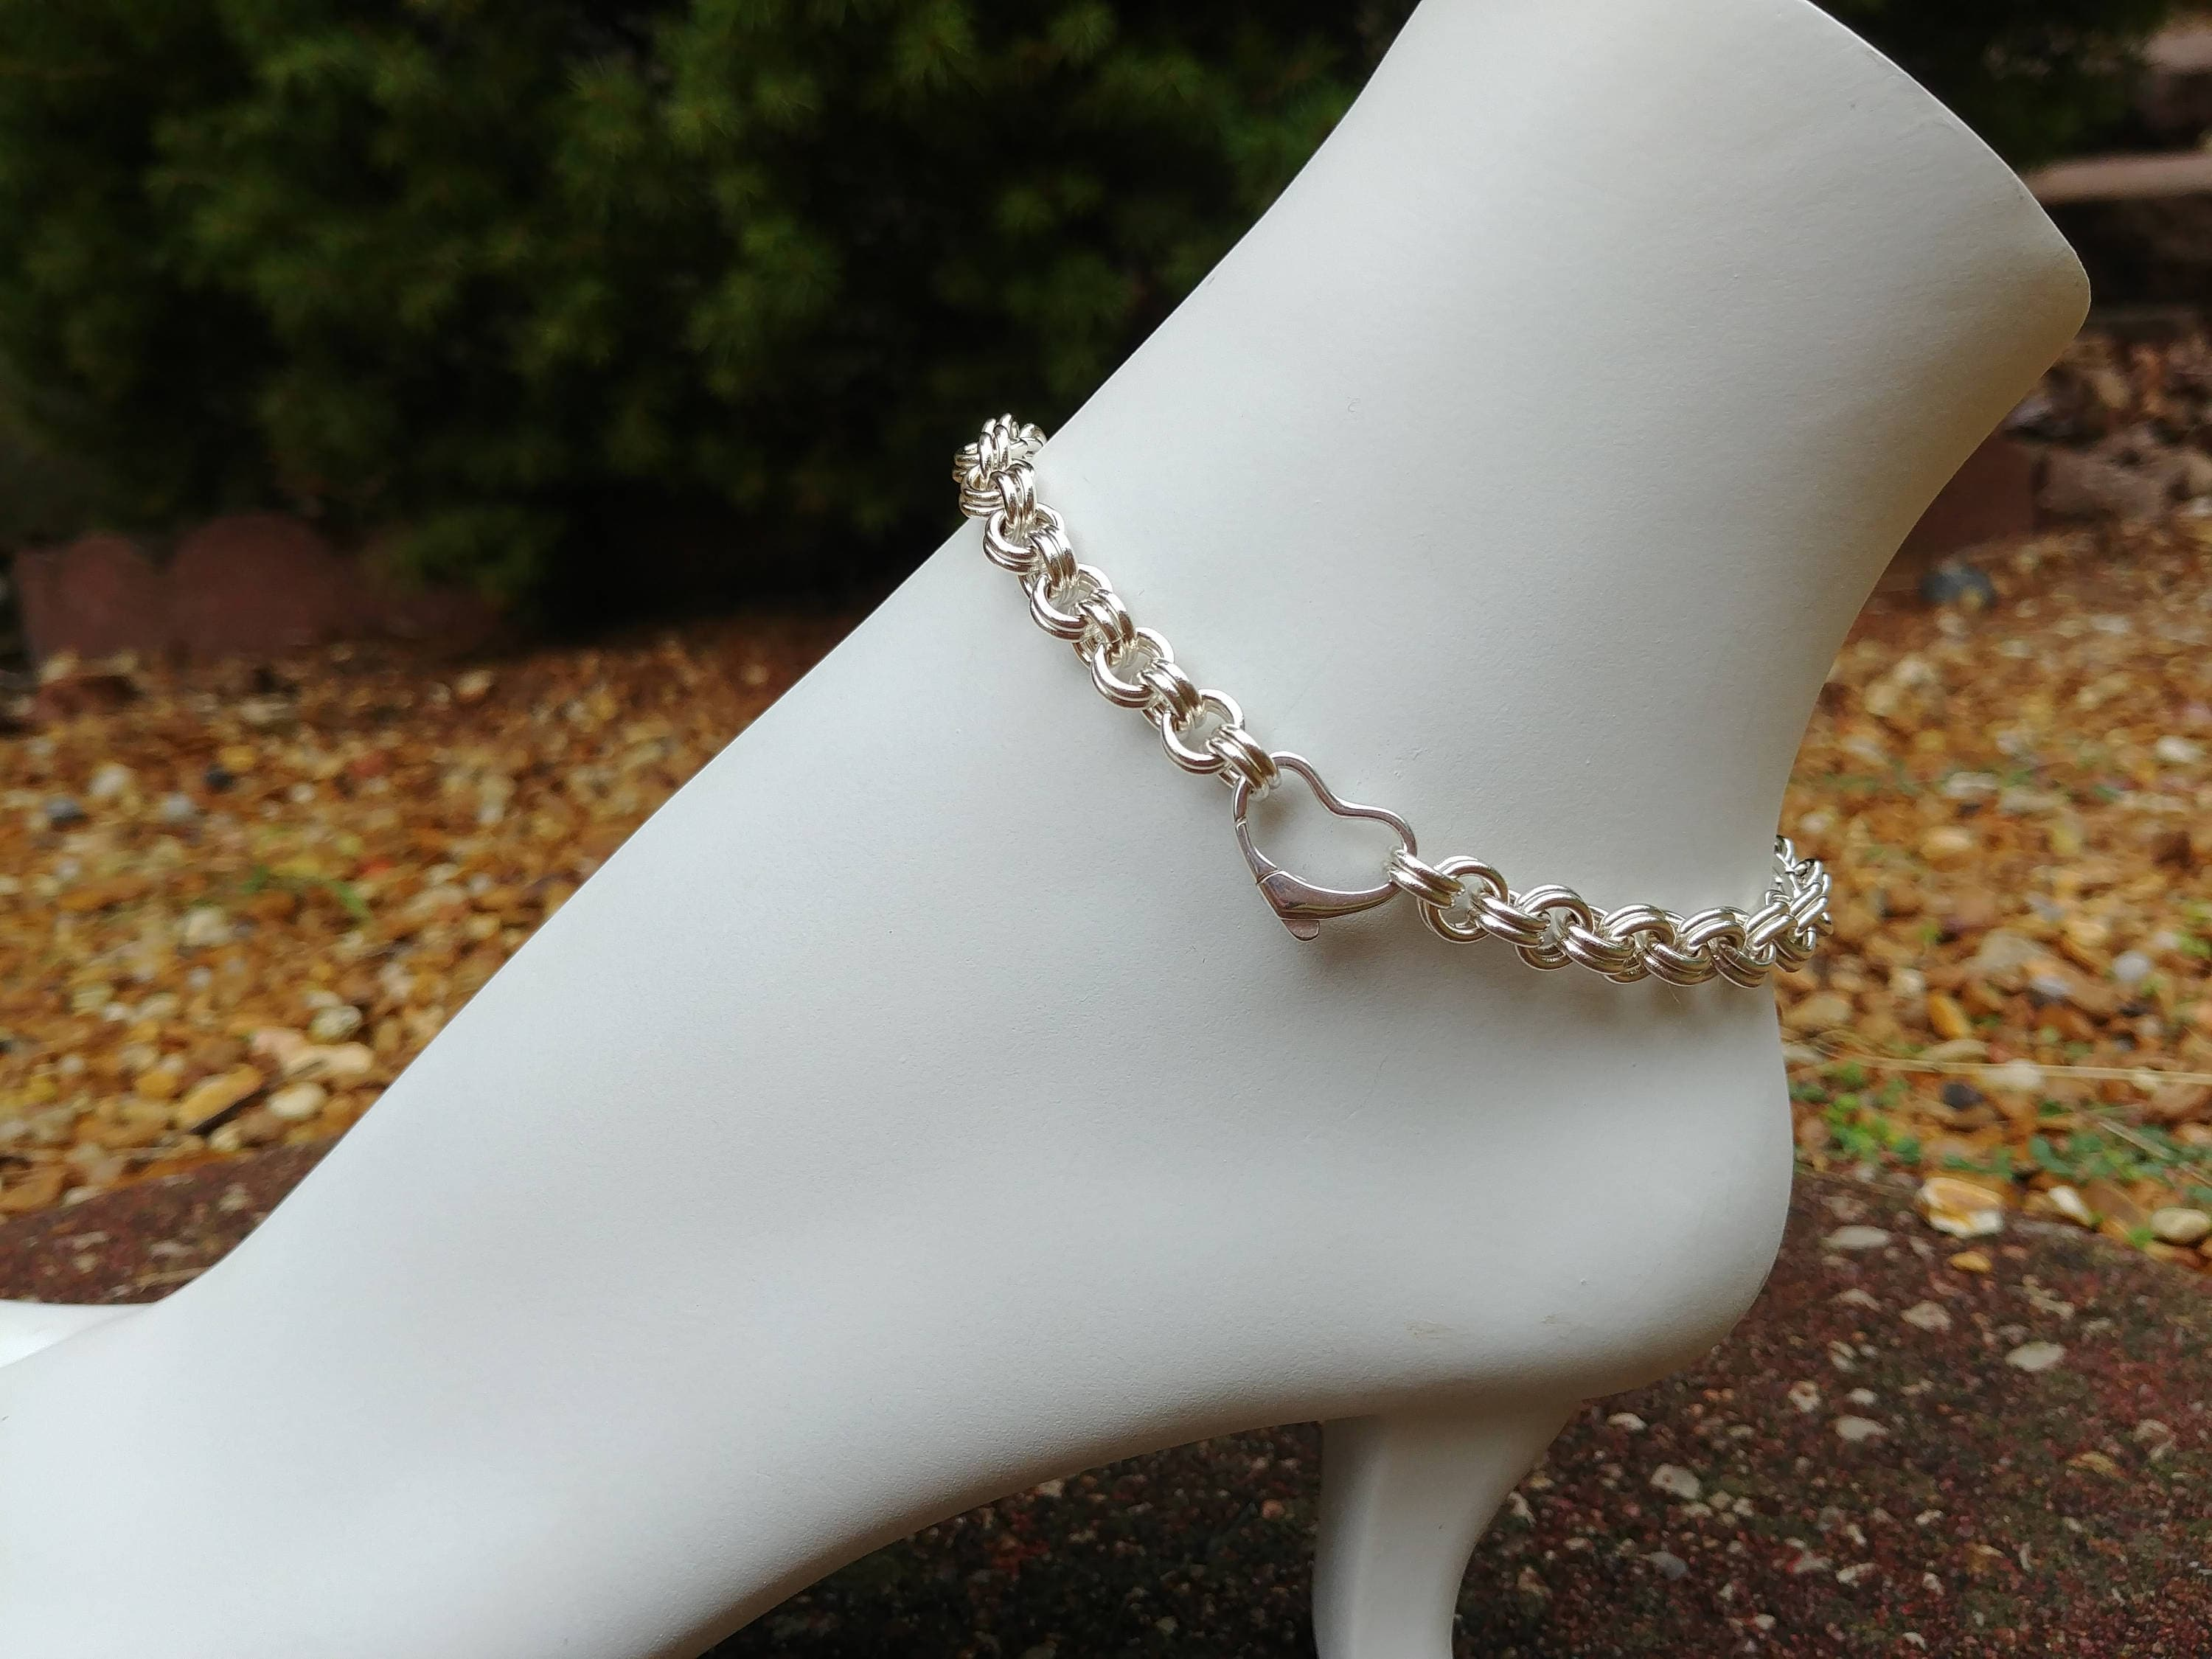 dangling p heart mm width length silver anklet grams sterling weight